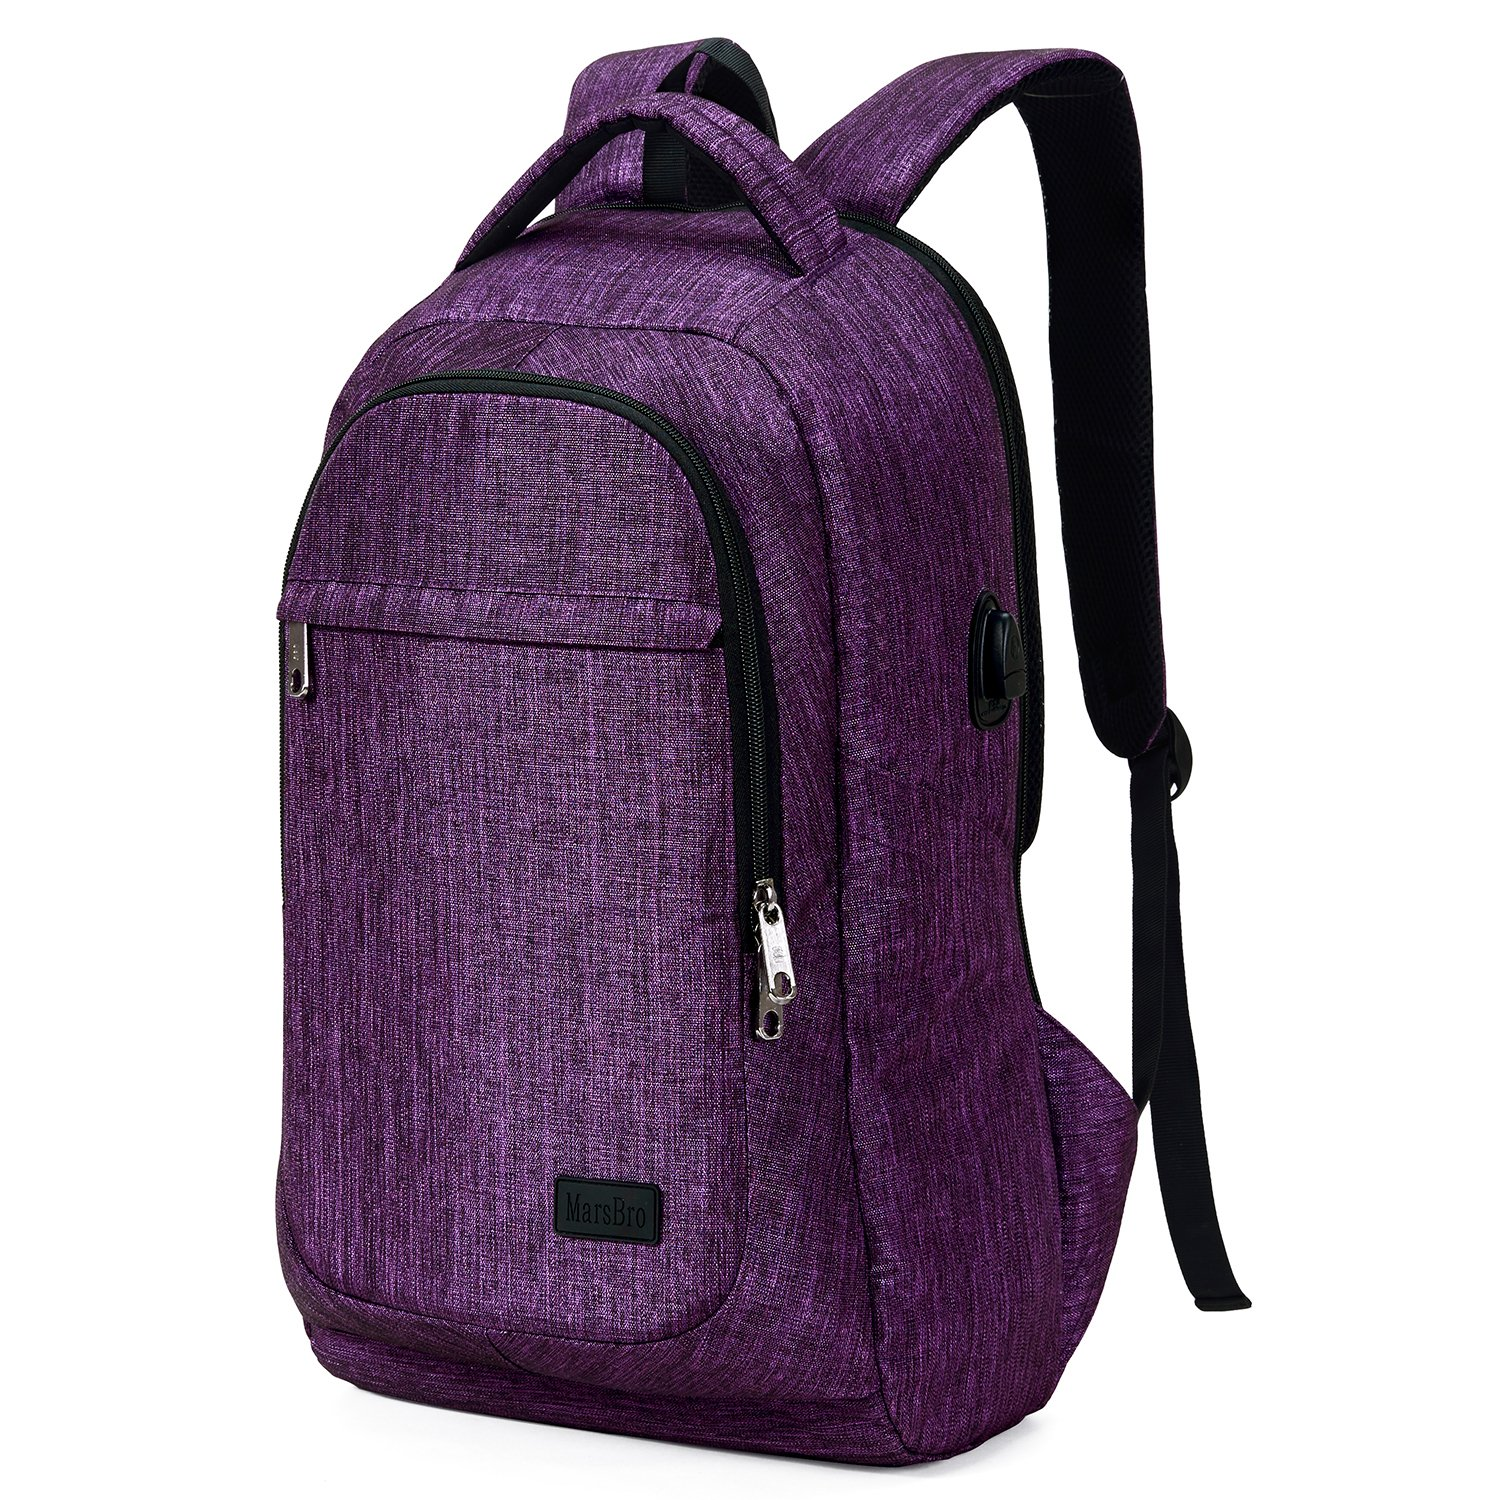 MarsBro Laptop Backpack, Anti Theft Business Water Resistant 15.6 Inch with USB Charging Port Travel College Computer Bag, Purple